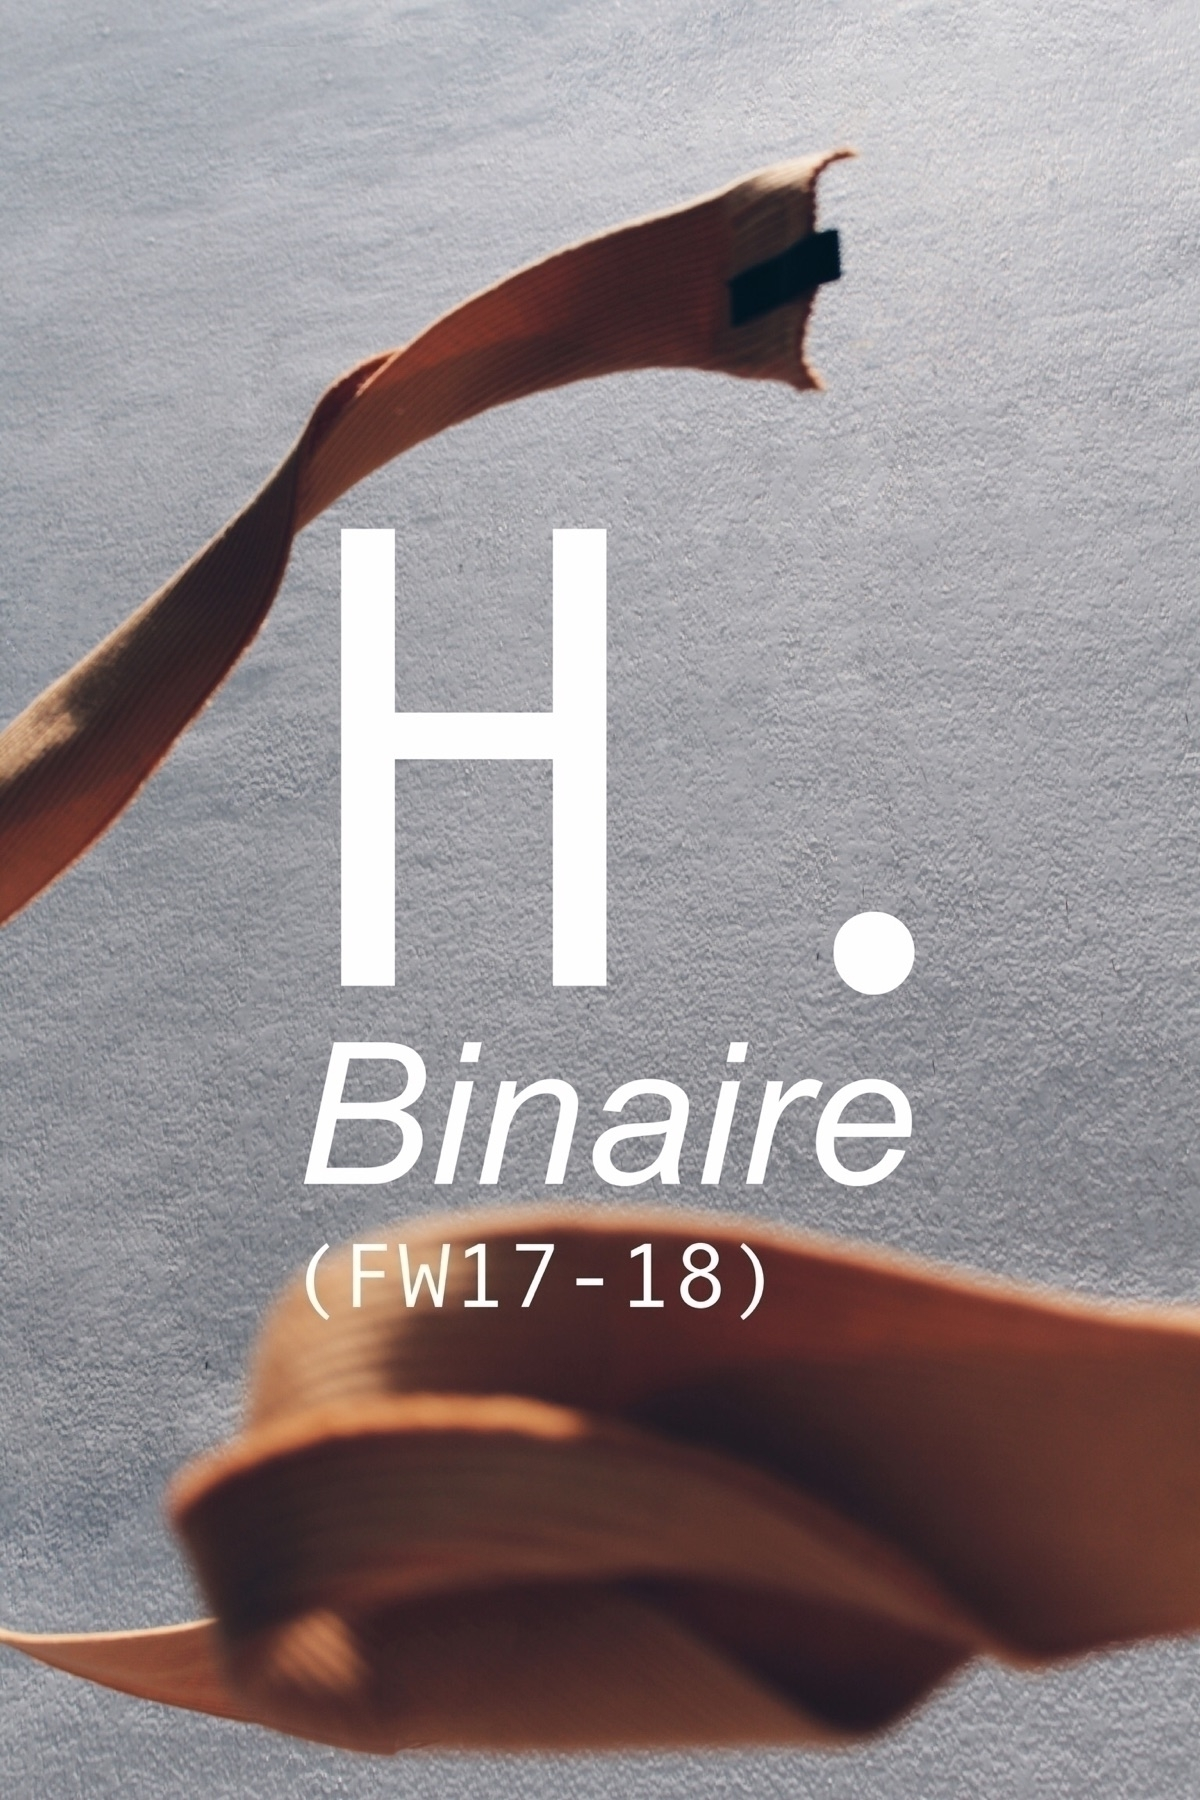 Binaire FW18 Photo - hectordelap | ello